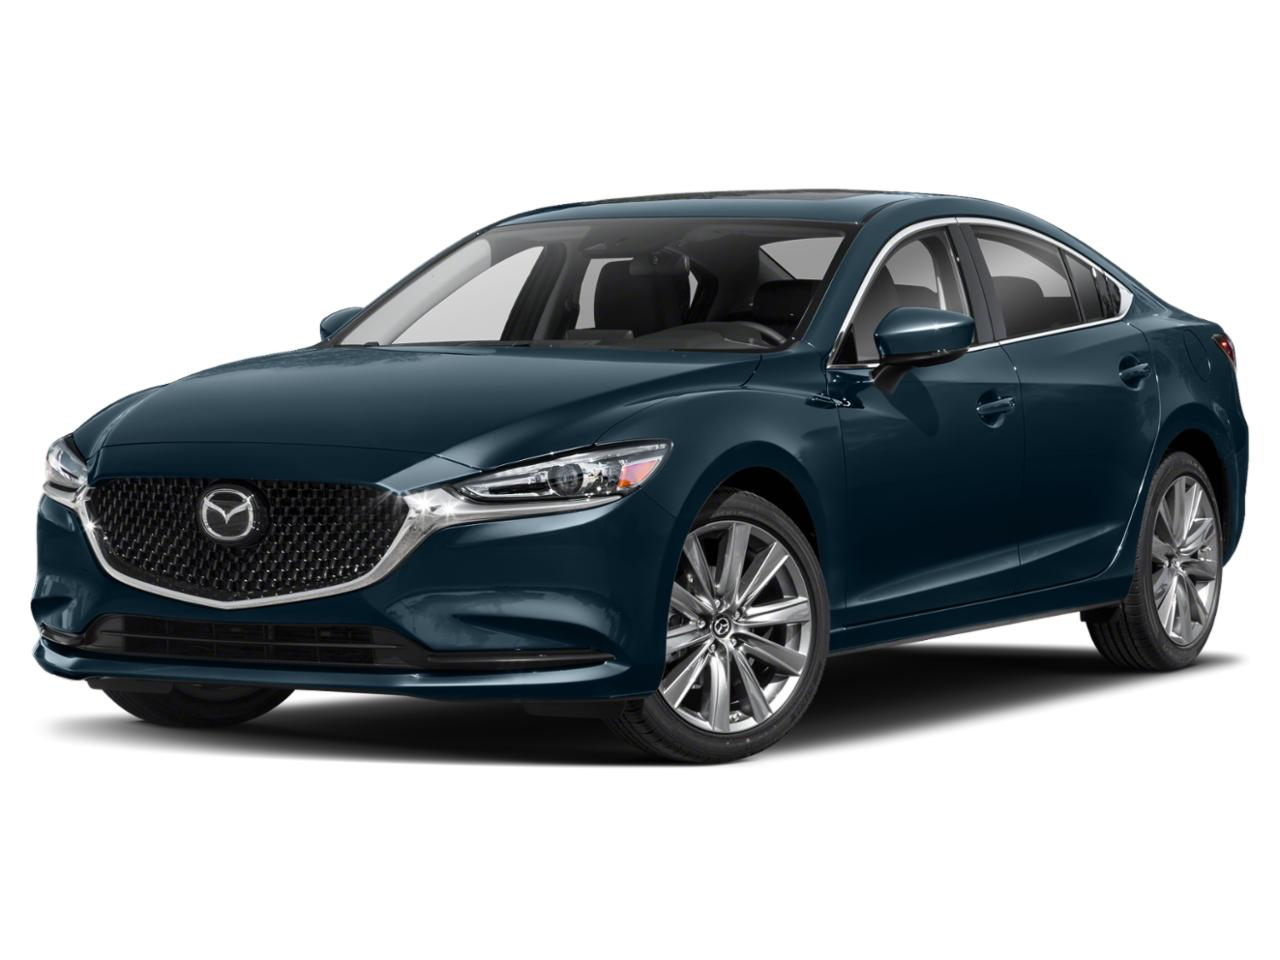 2021 Mazda Mazda6 Vehicle Photo in Lewisville, TX 75067